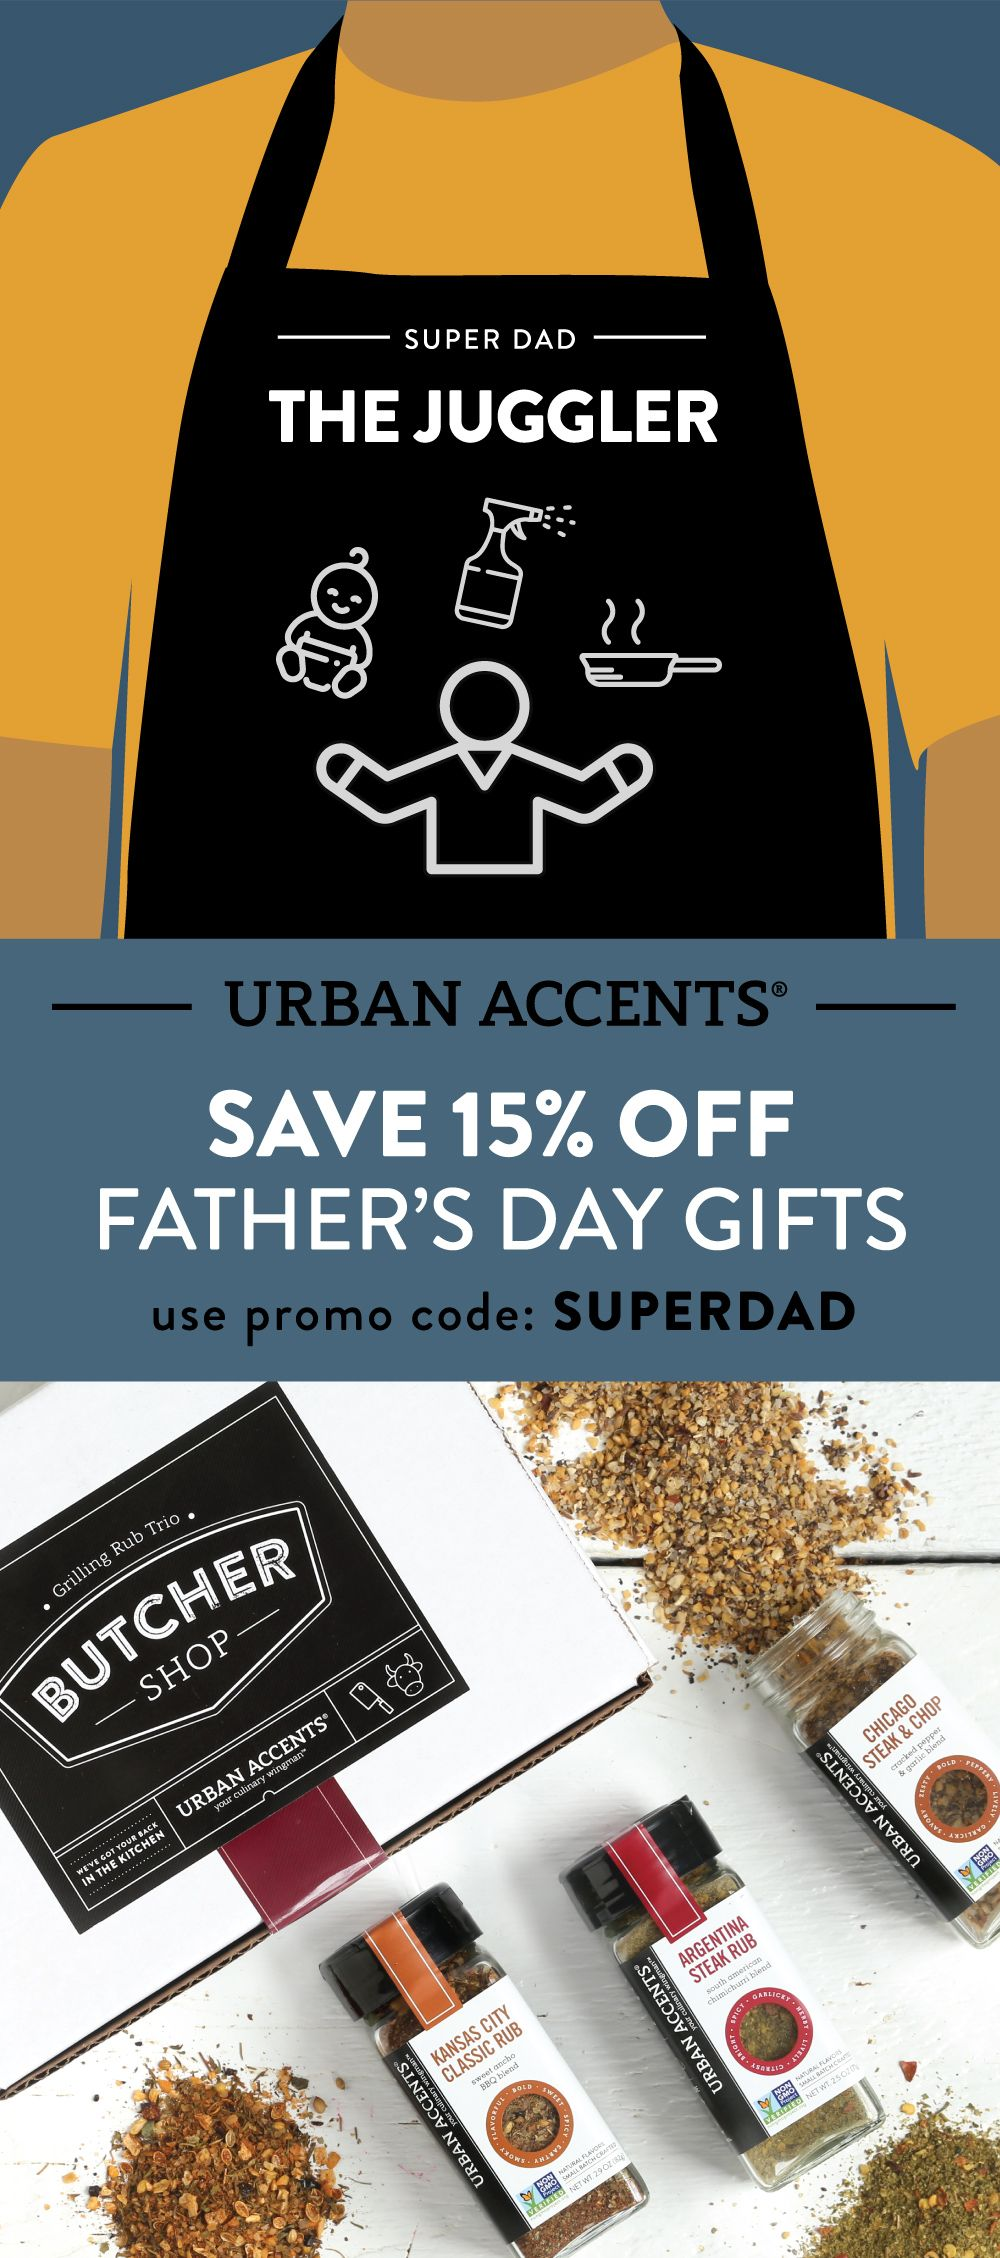 Urban accents promo code